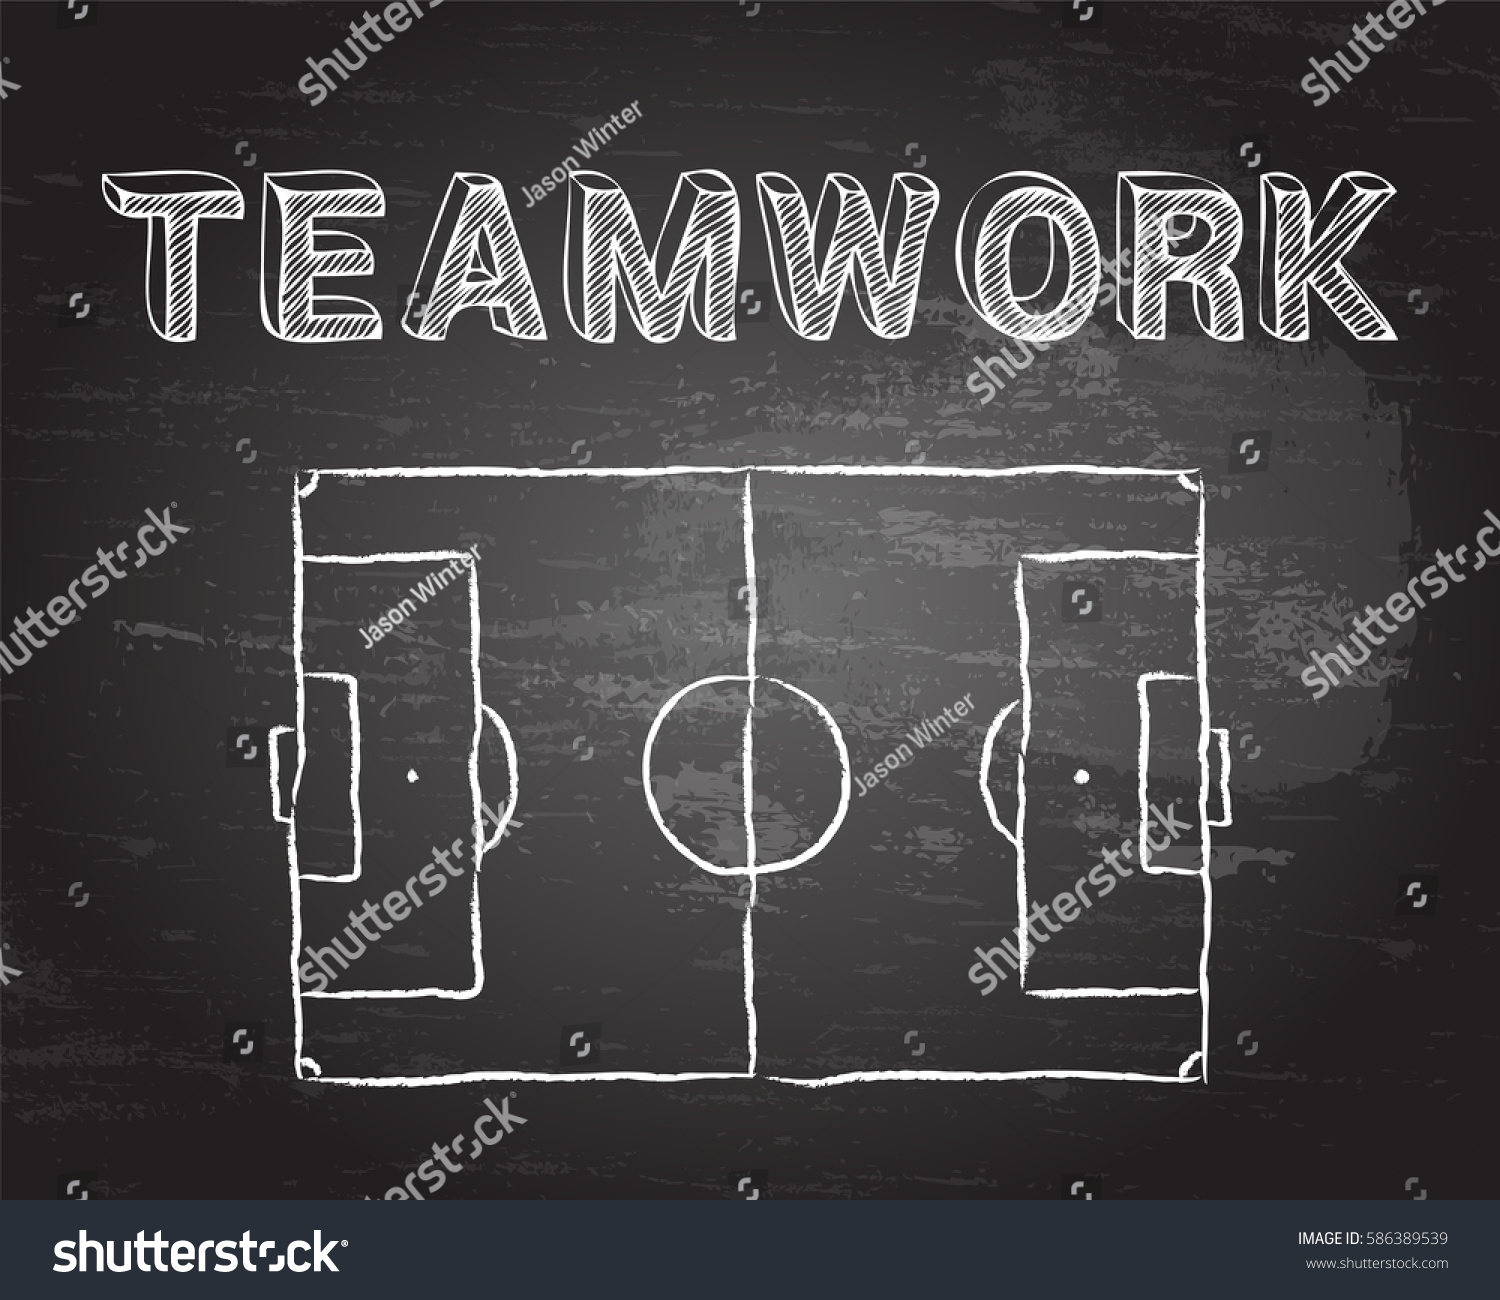 hight resolution of soccer football pitch diagram and teamwork word on blackboard